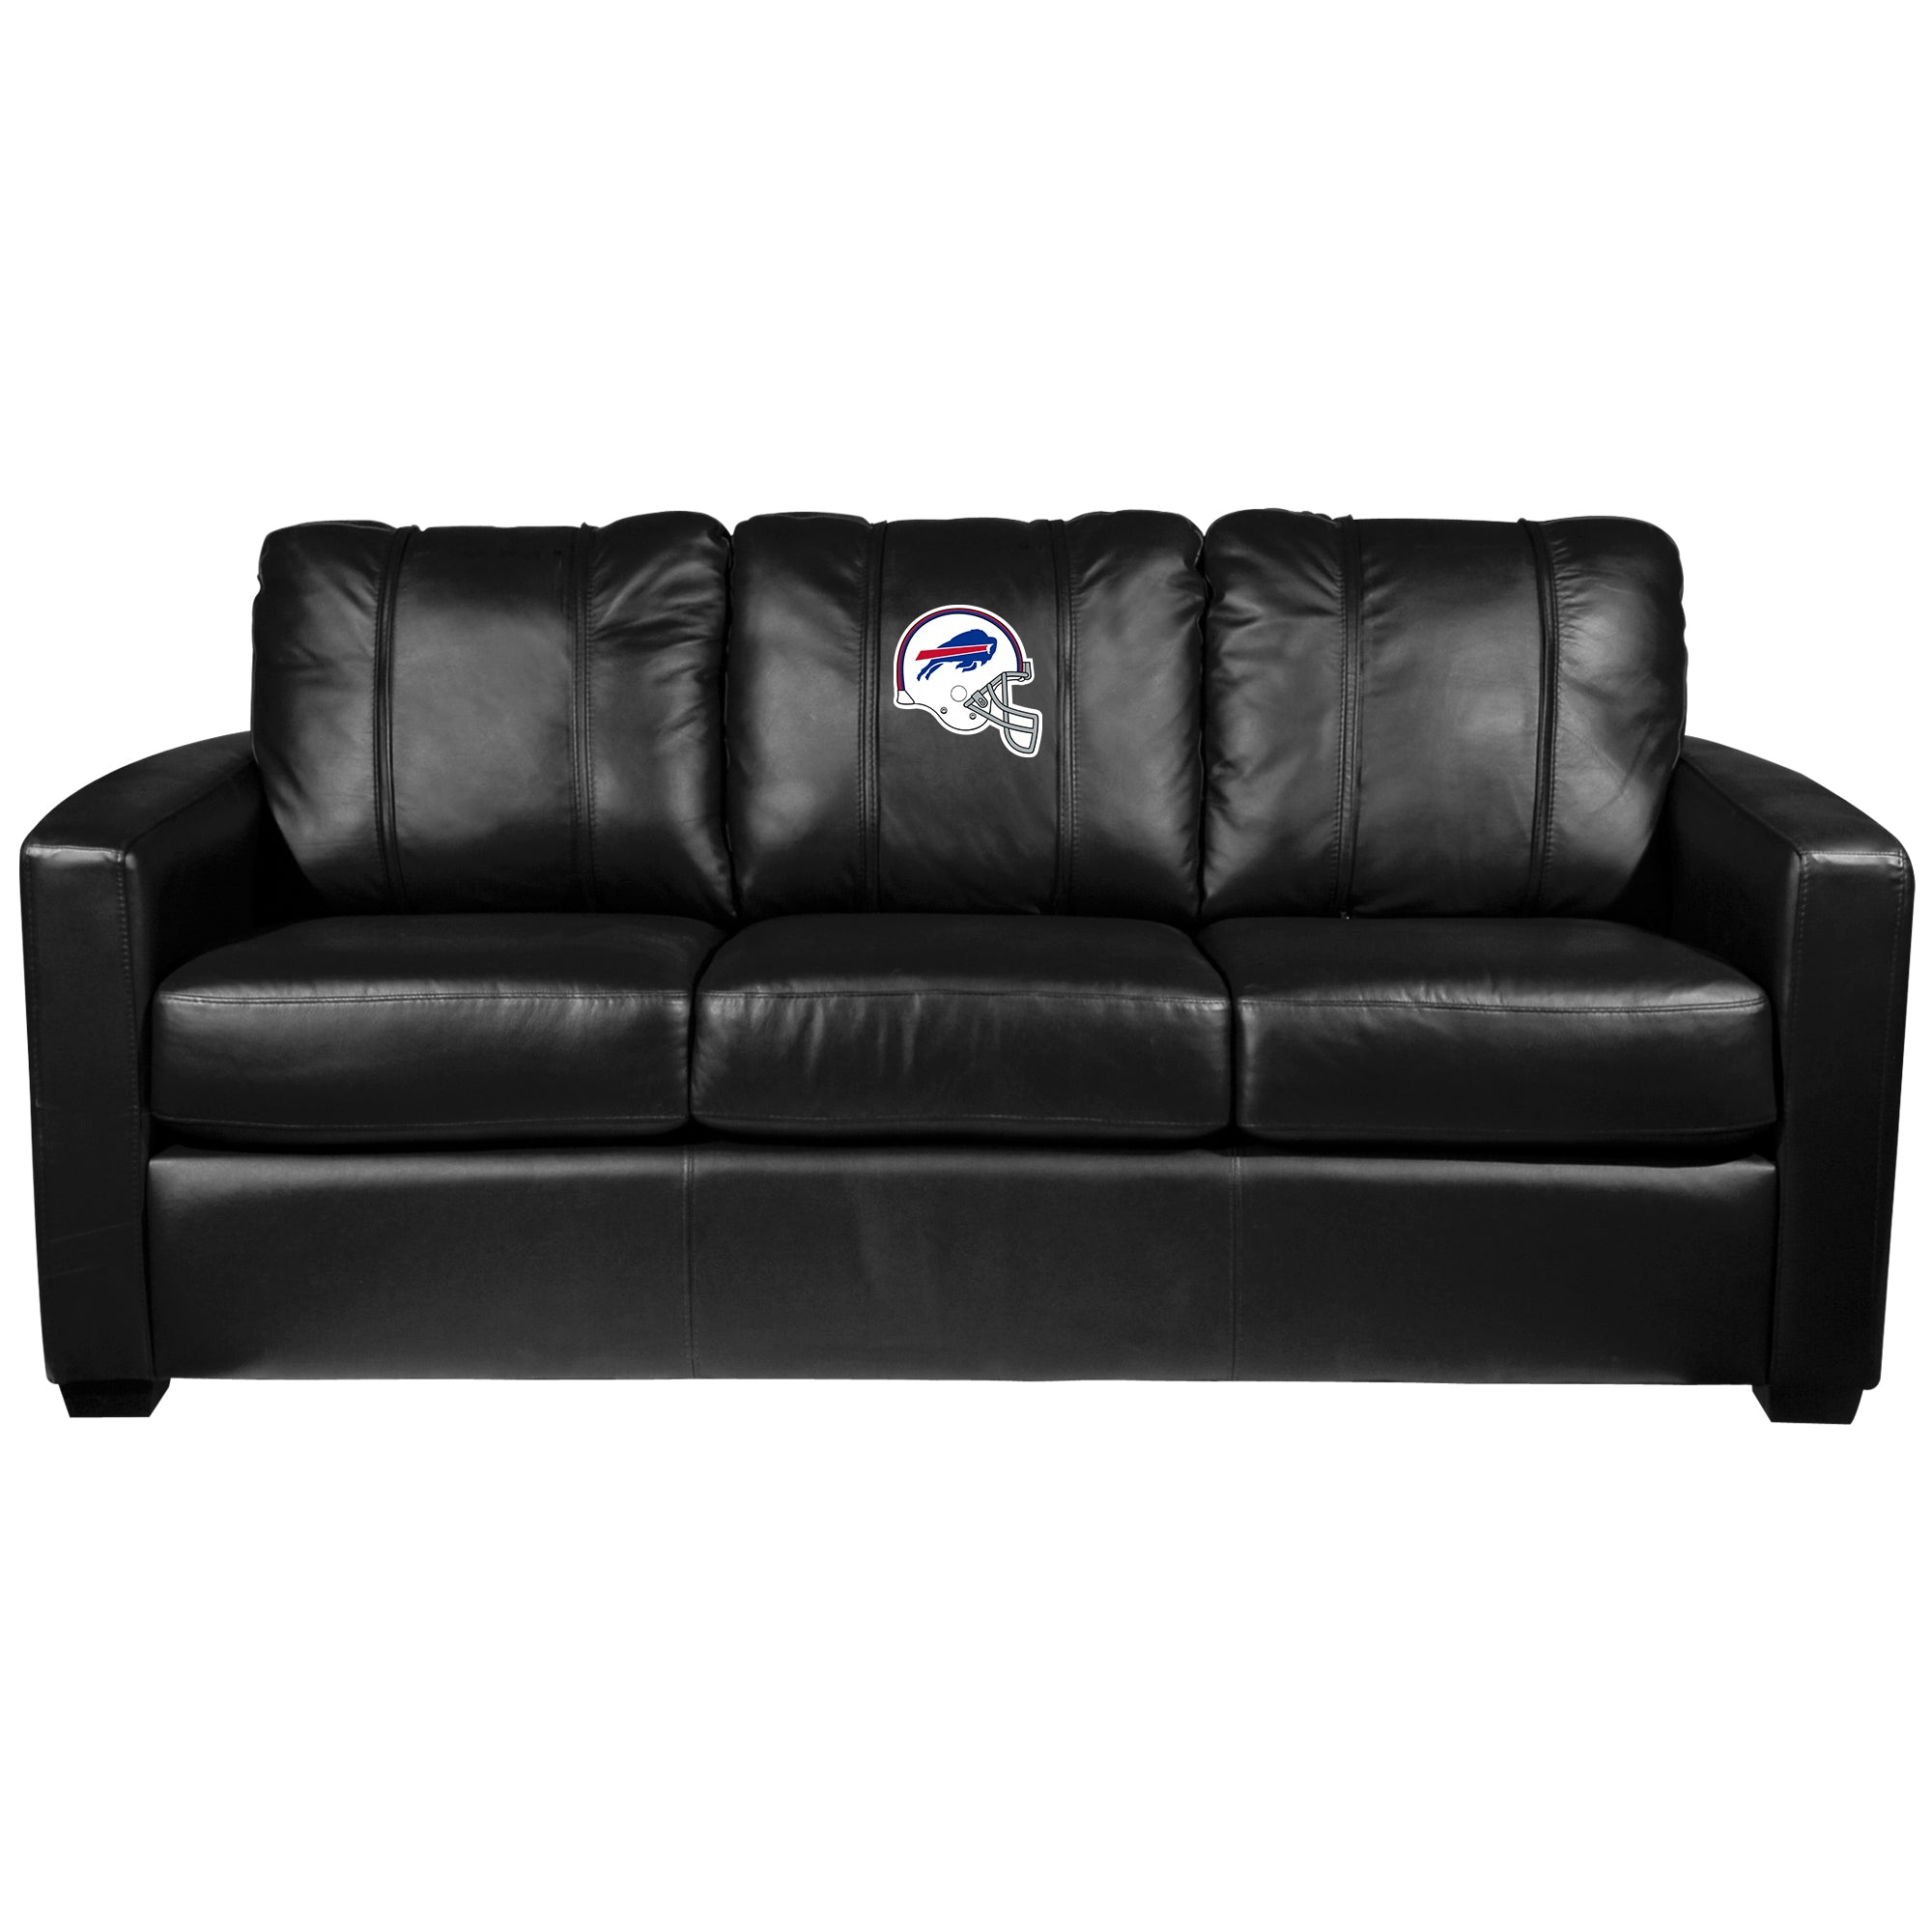 Silver Sofa with  Buffalo Bills Helmet Logo